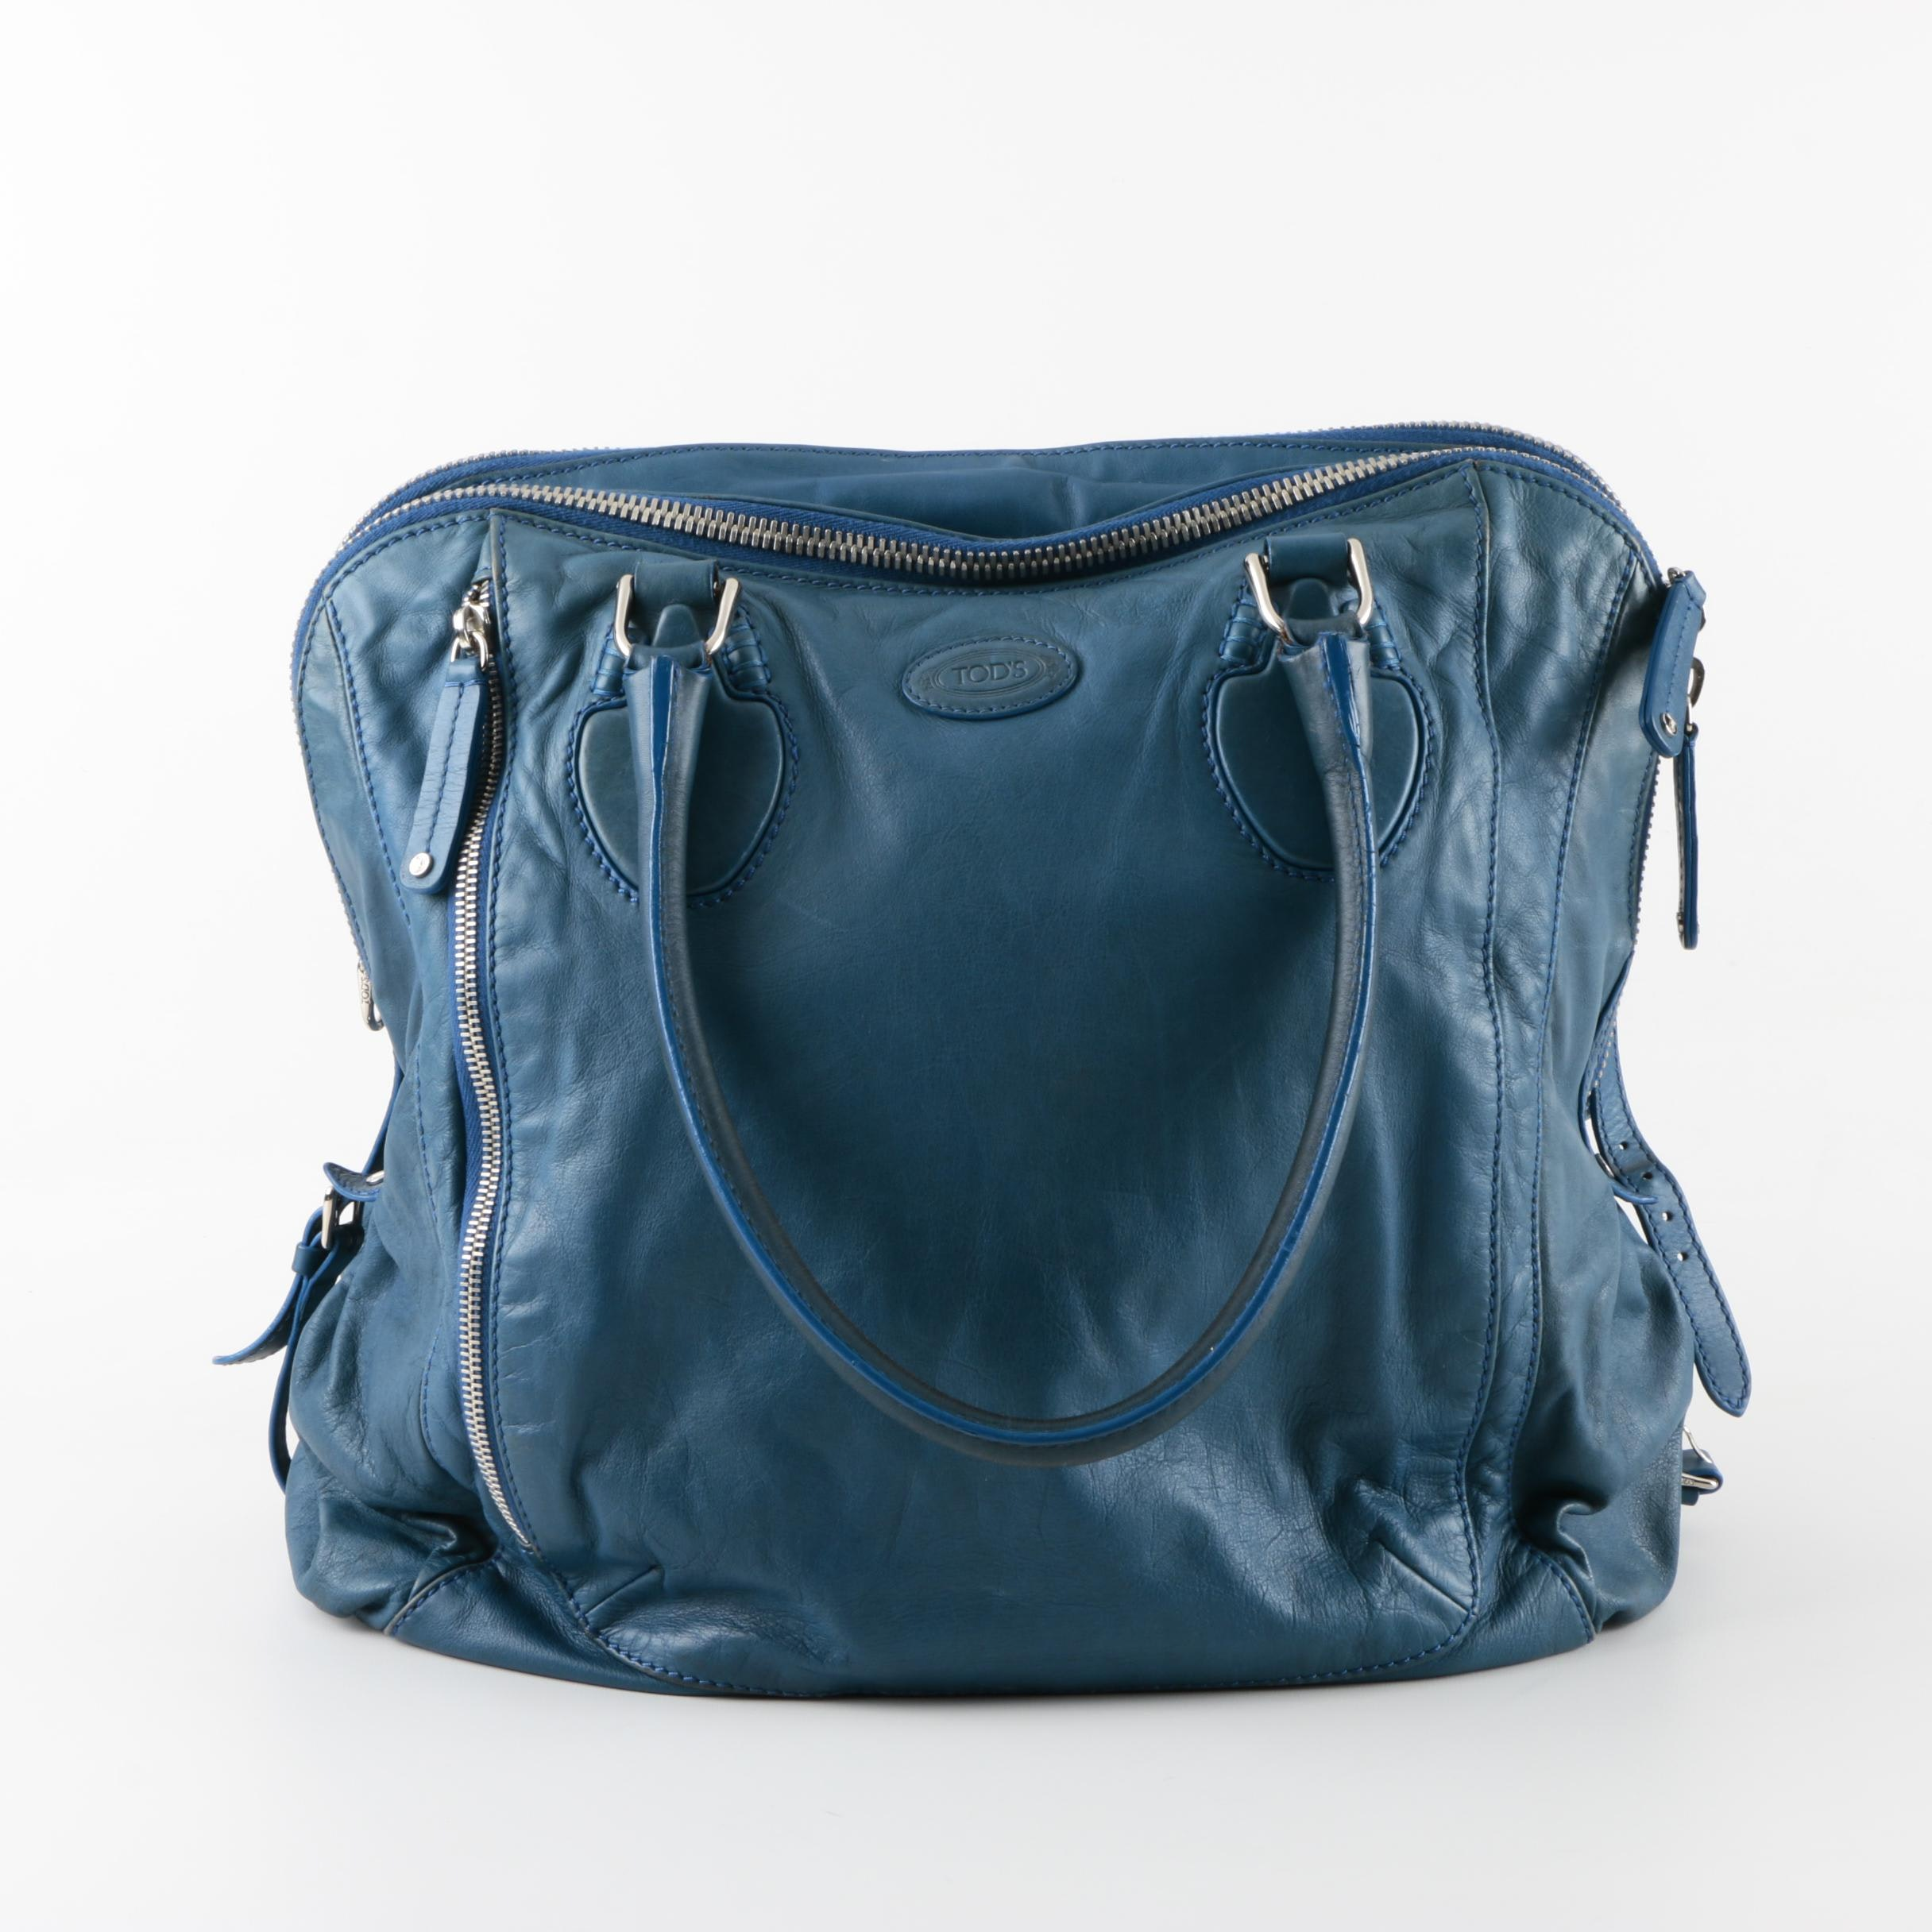 Tod's Blue Leather Handbag